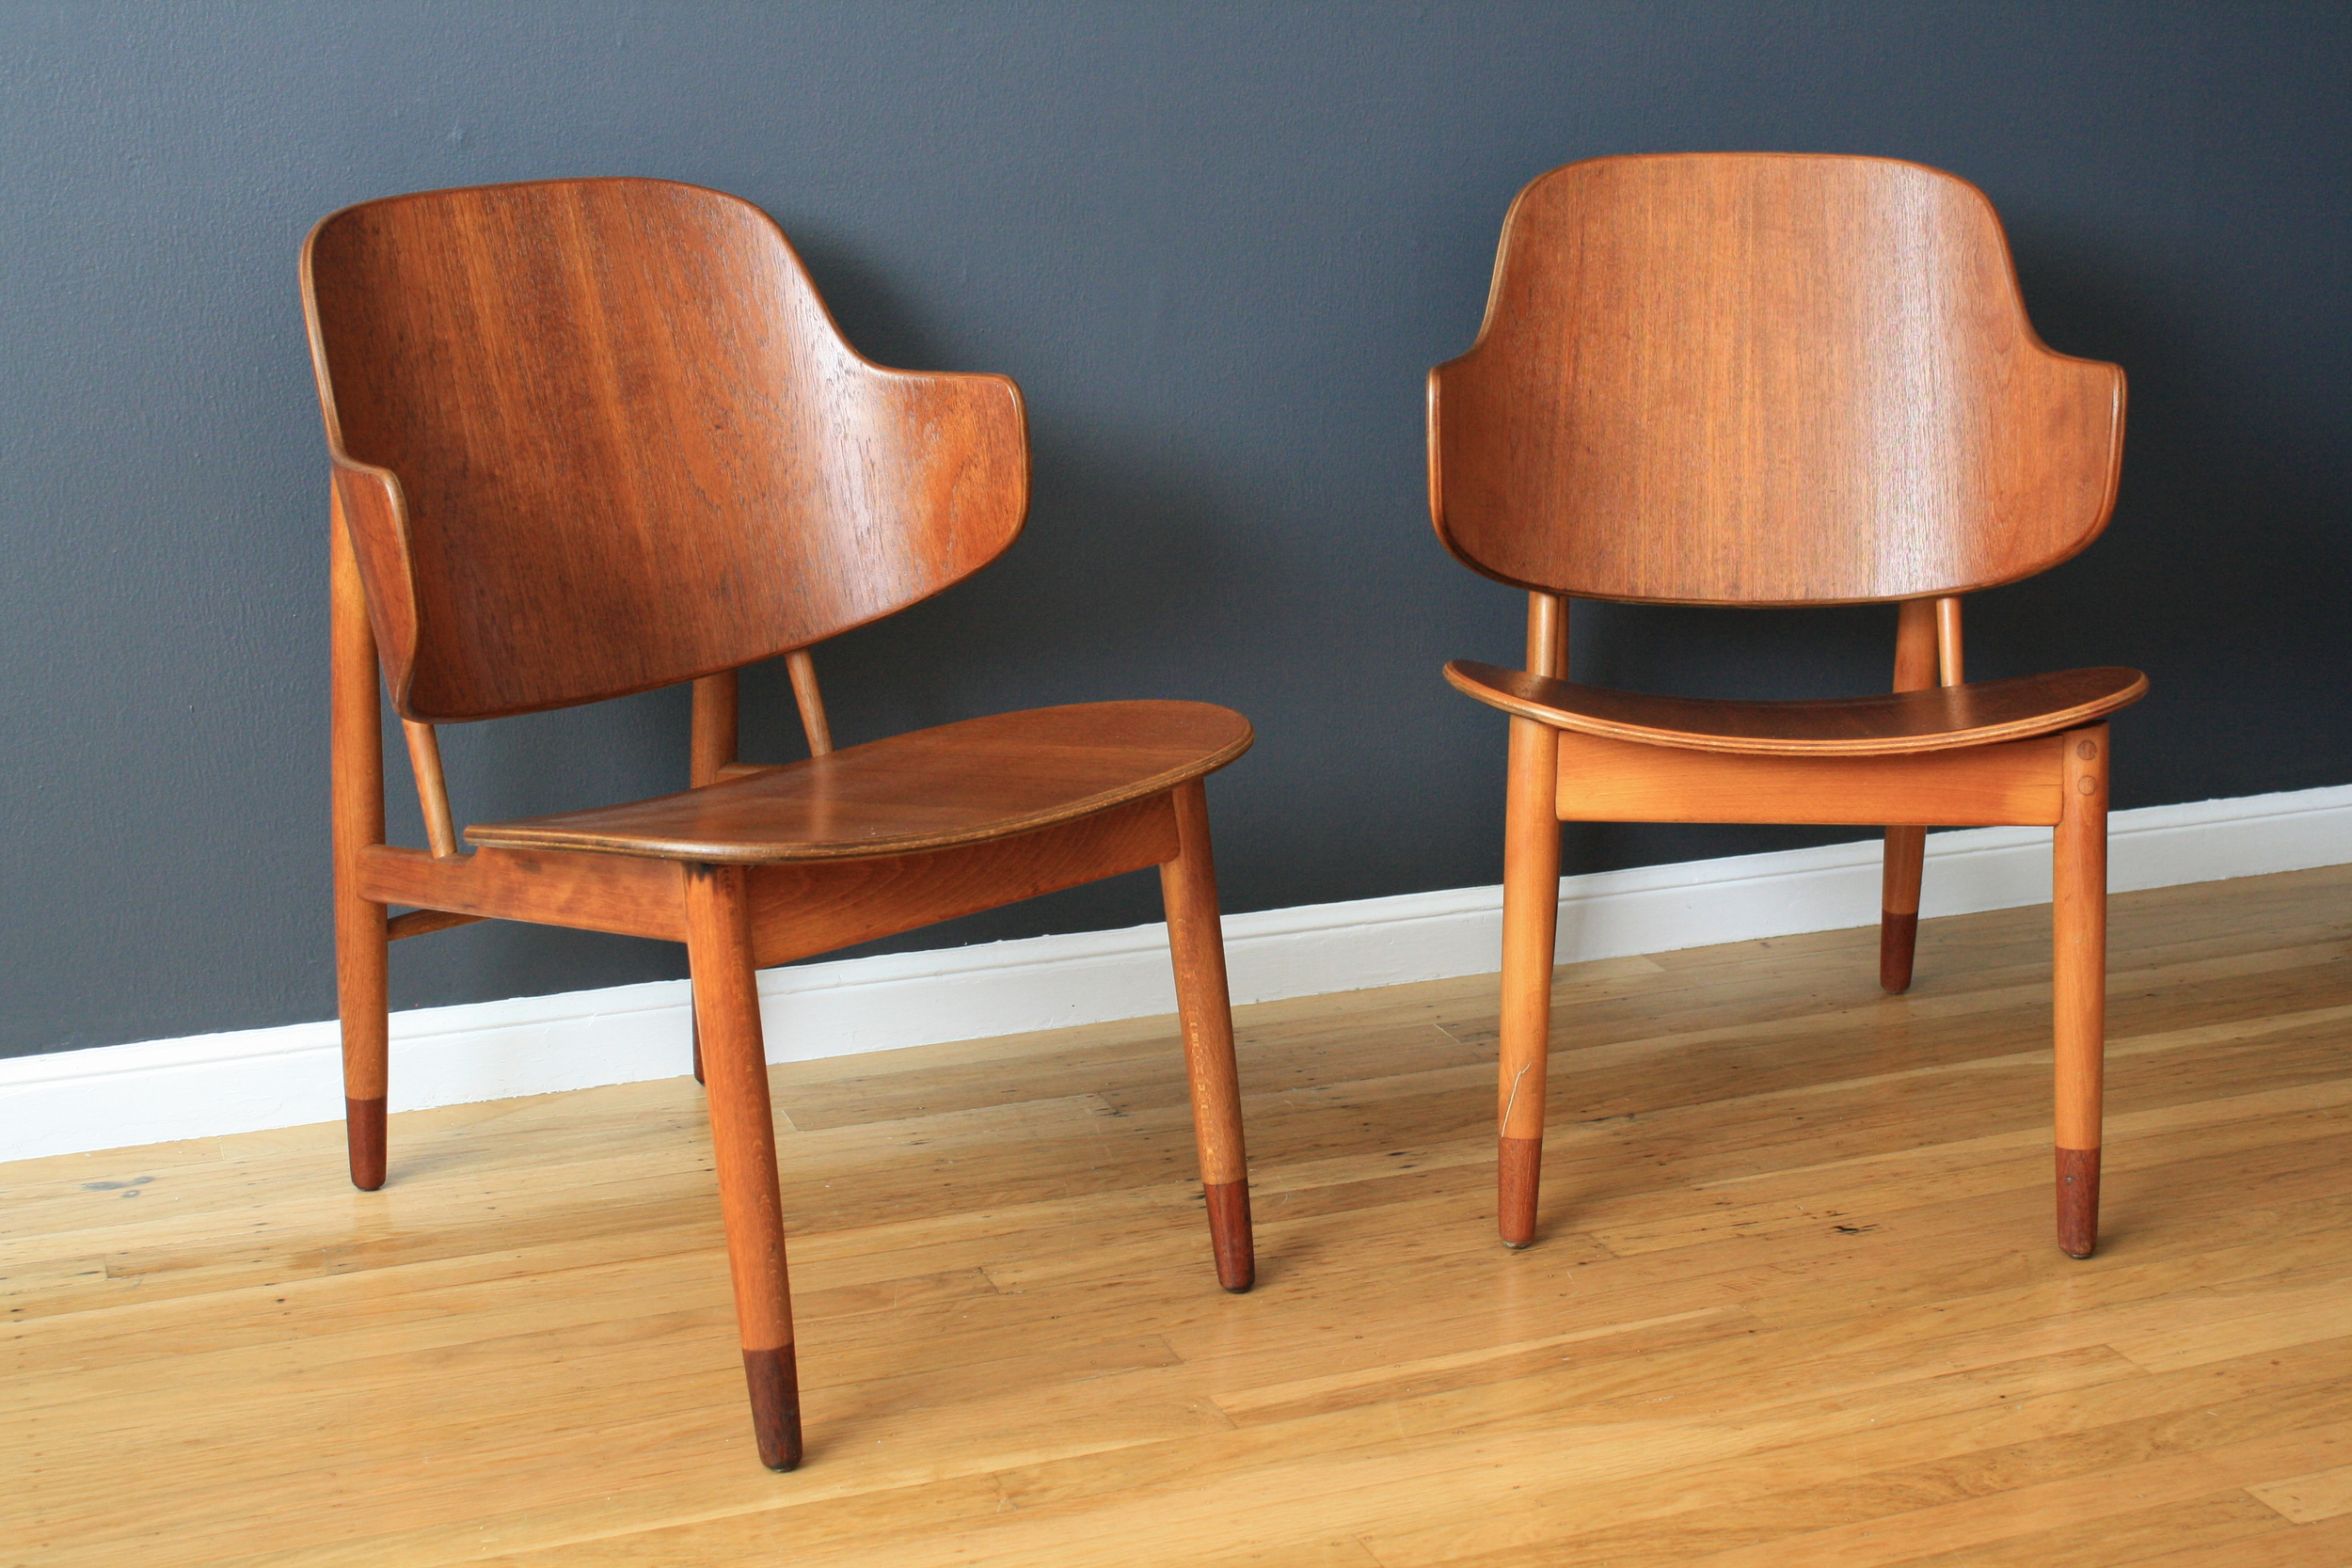 Pair of Danish Modern Chairs by IB Kofod Larsen